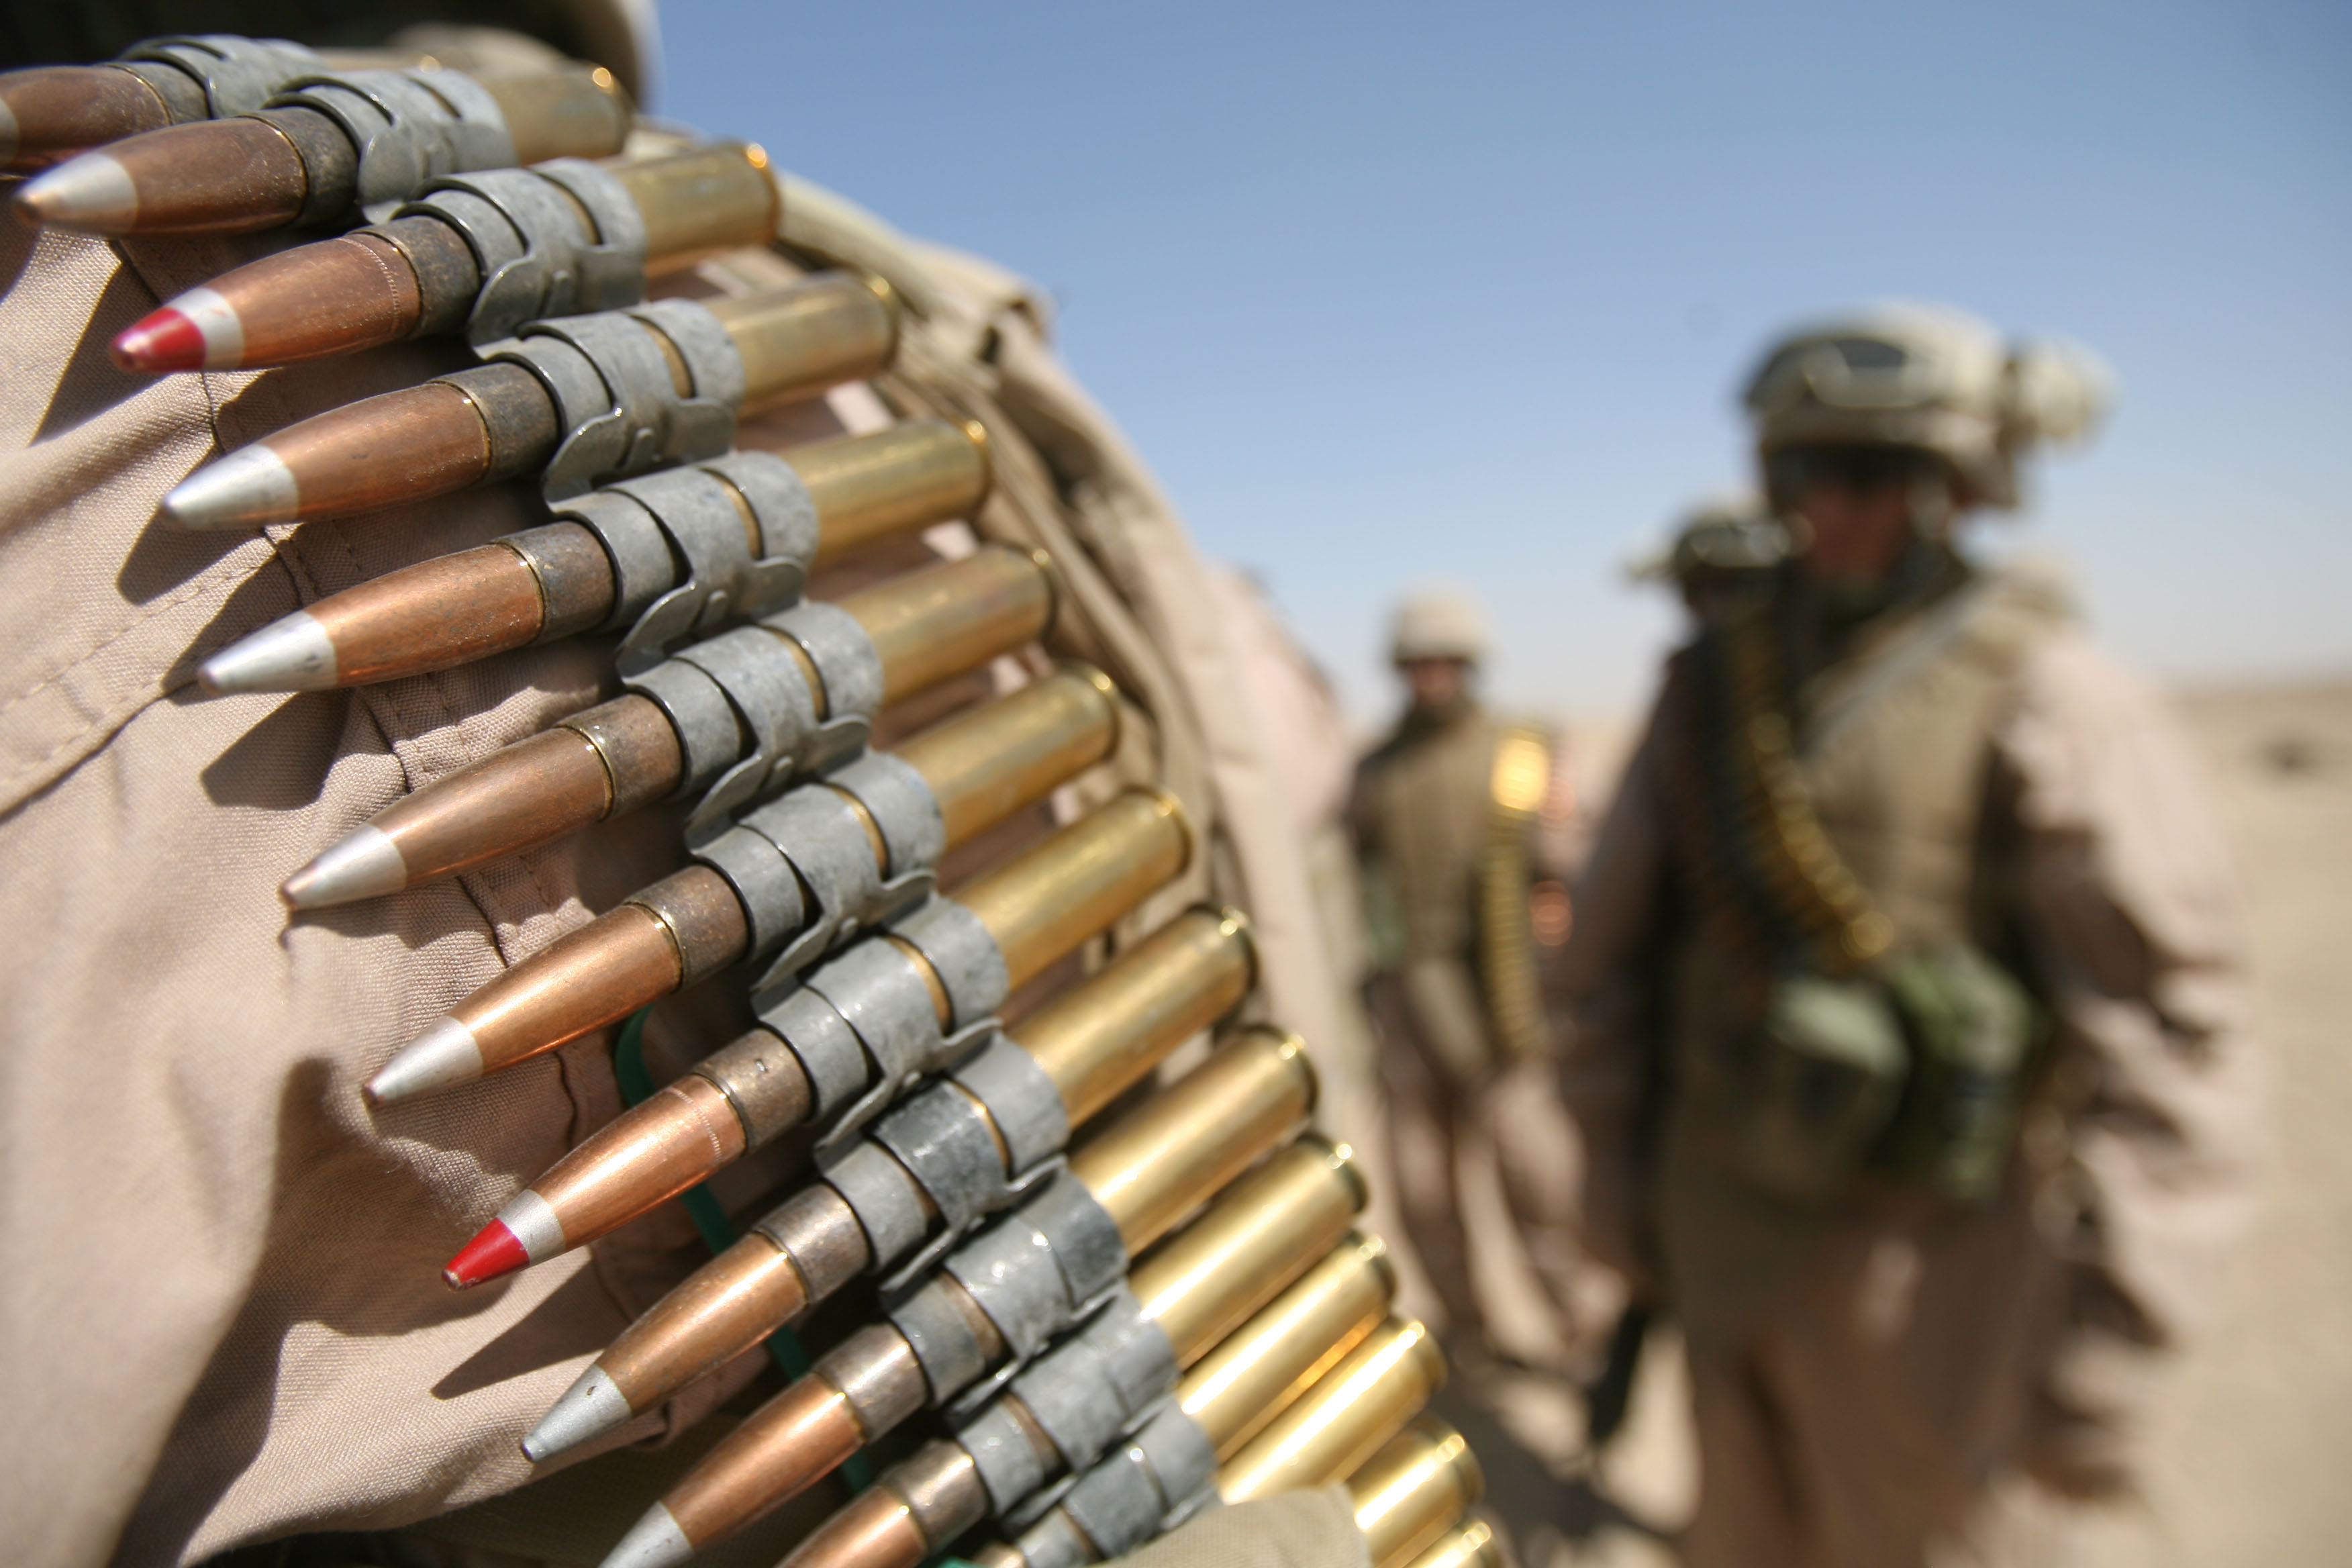 Orbital ATK has received a $76 million order from the U.S. Army for .50 caliber ammunition. (Photo: Business Wire)